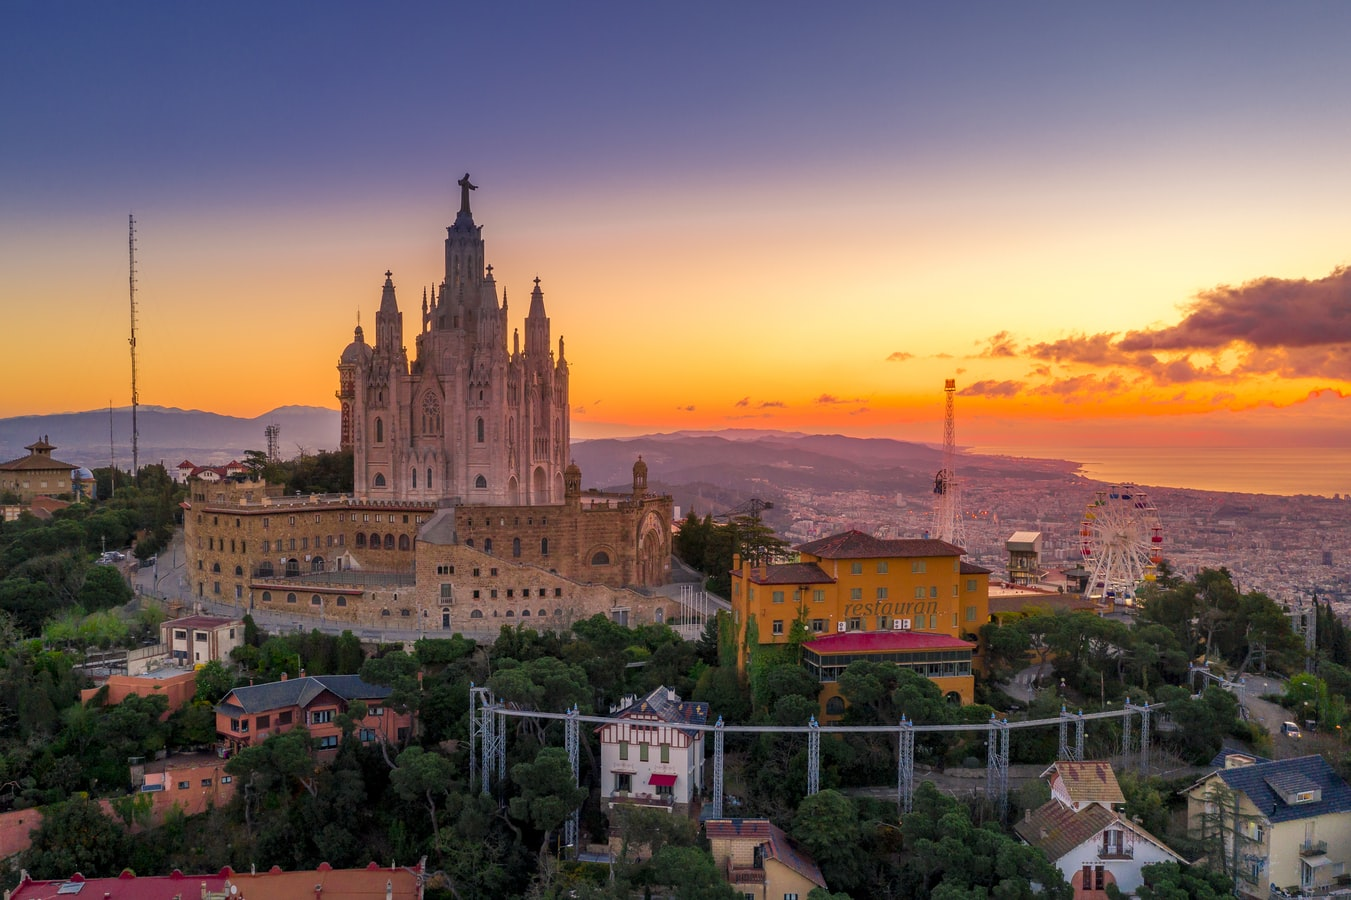 A cathedral on top of a hill overlooking Barcelona, Spain